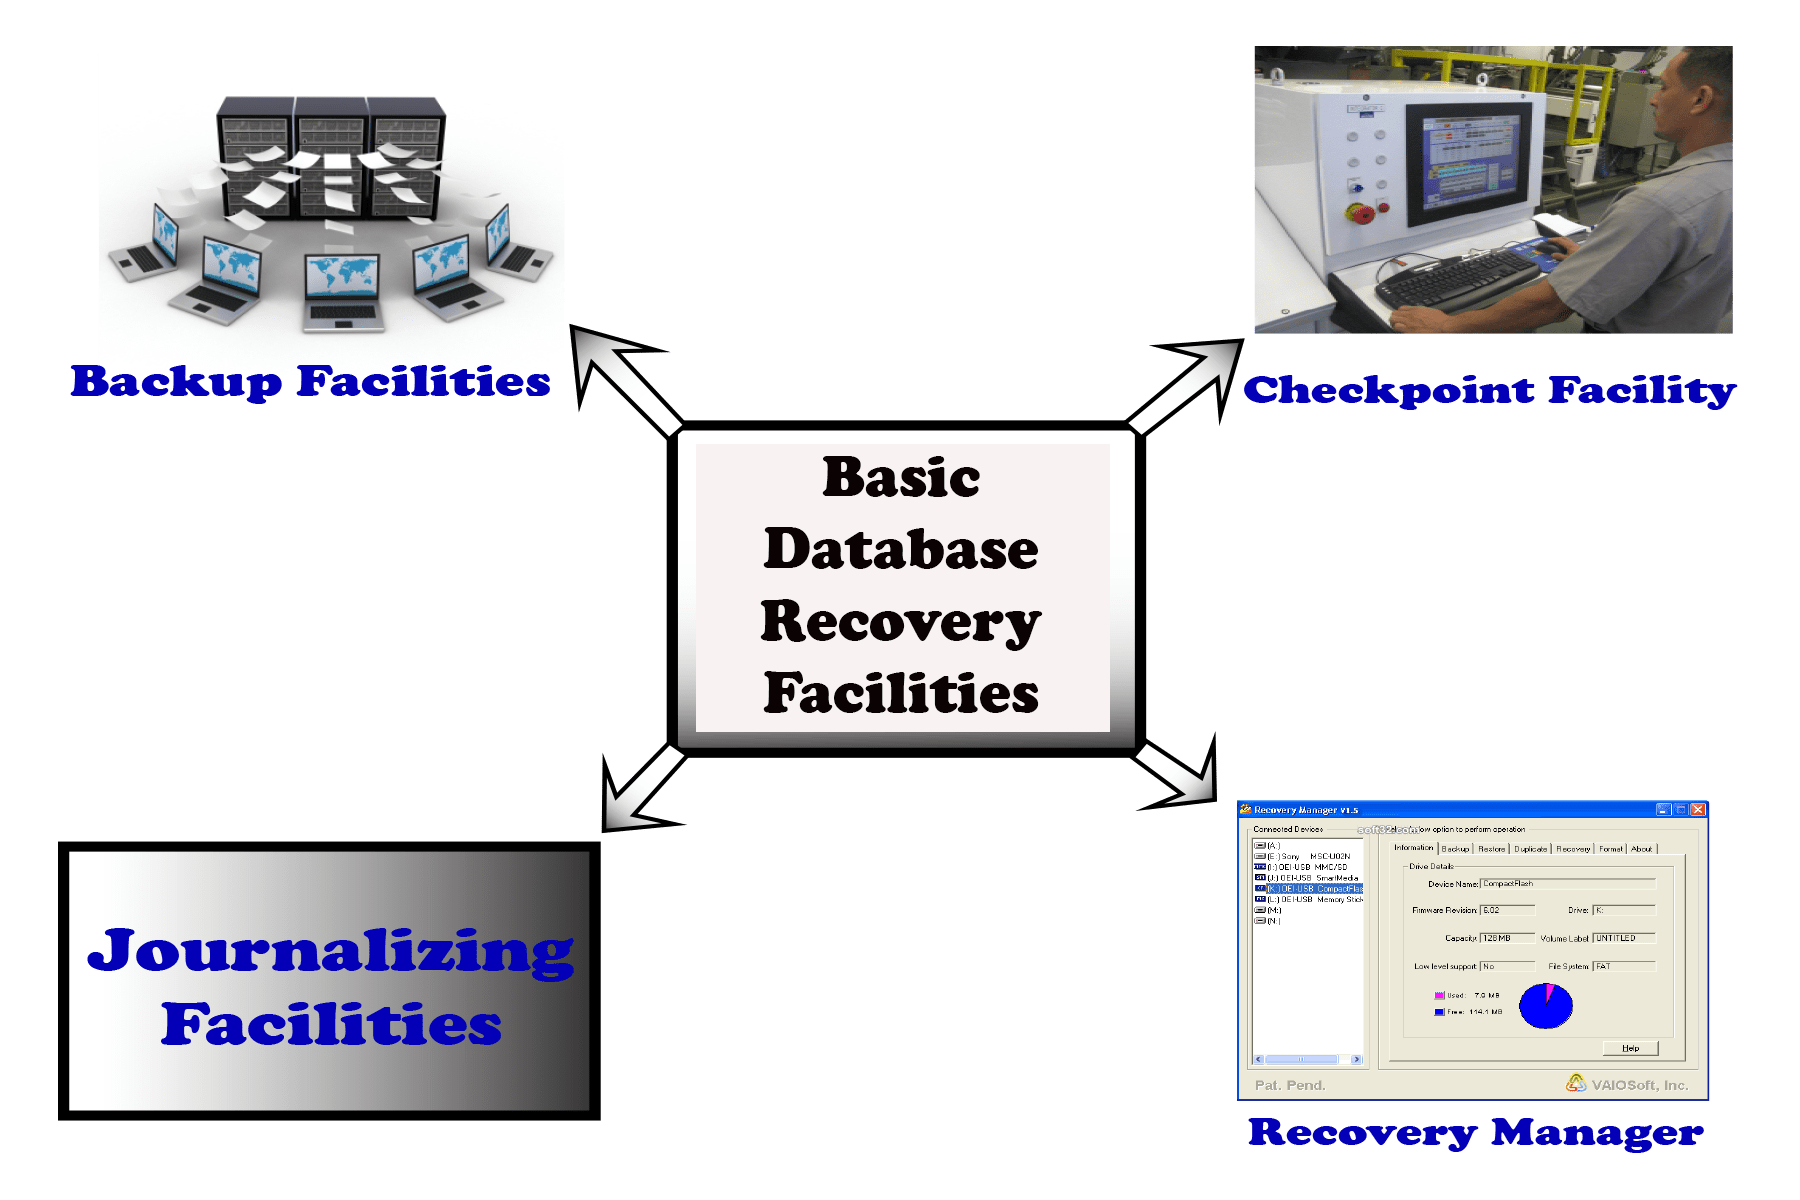 Database Recovery | Basic Database Recovery Facilities